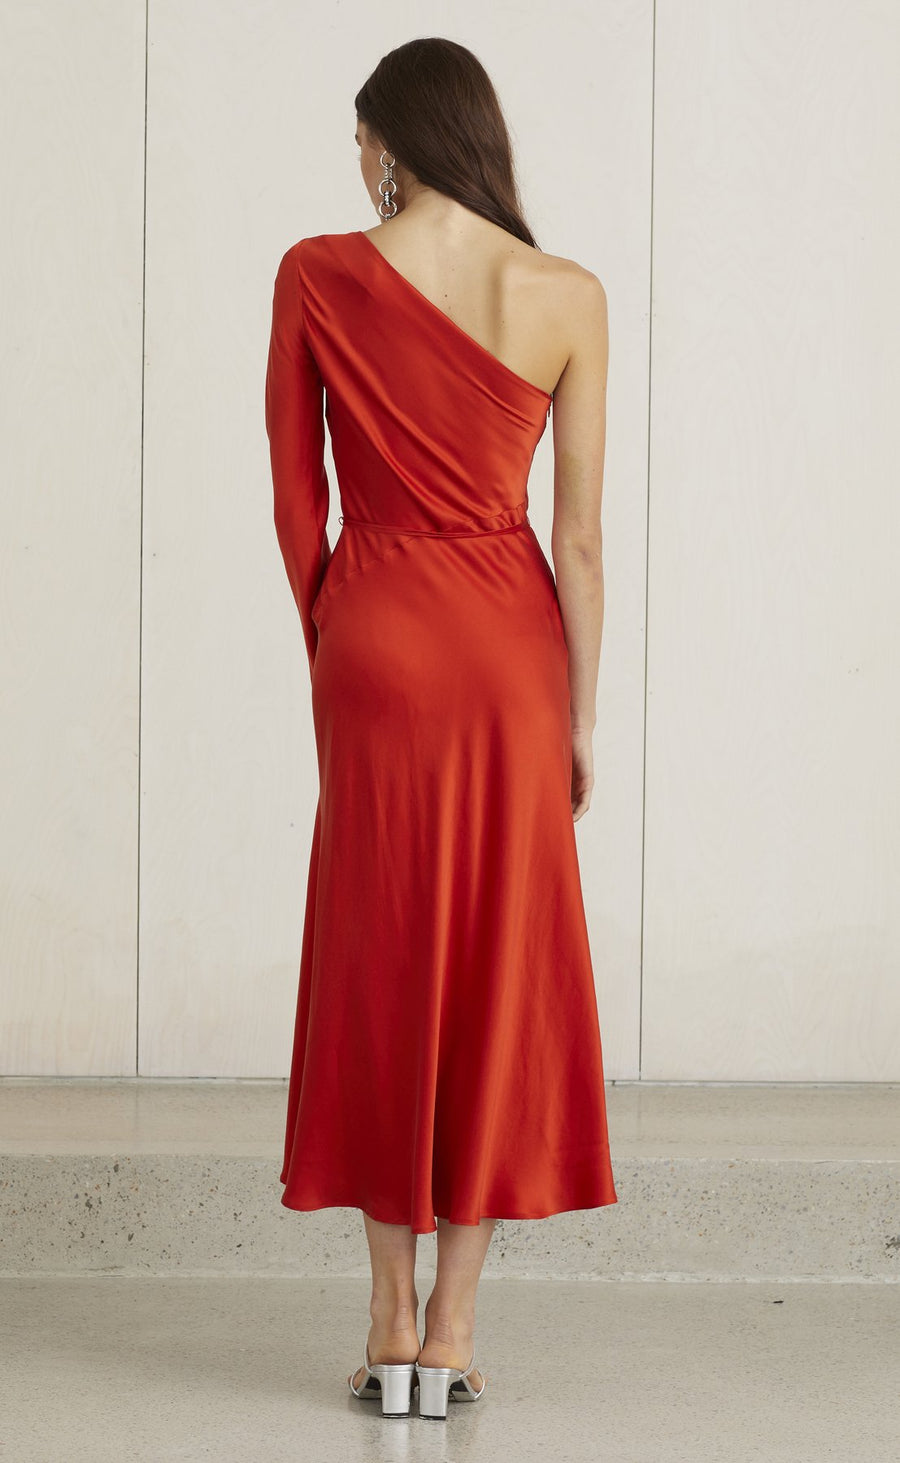 BEC & BRIDGE - CLASSIC ONE SHOULDER DRESS - FIRE